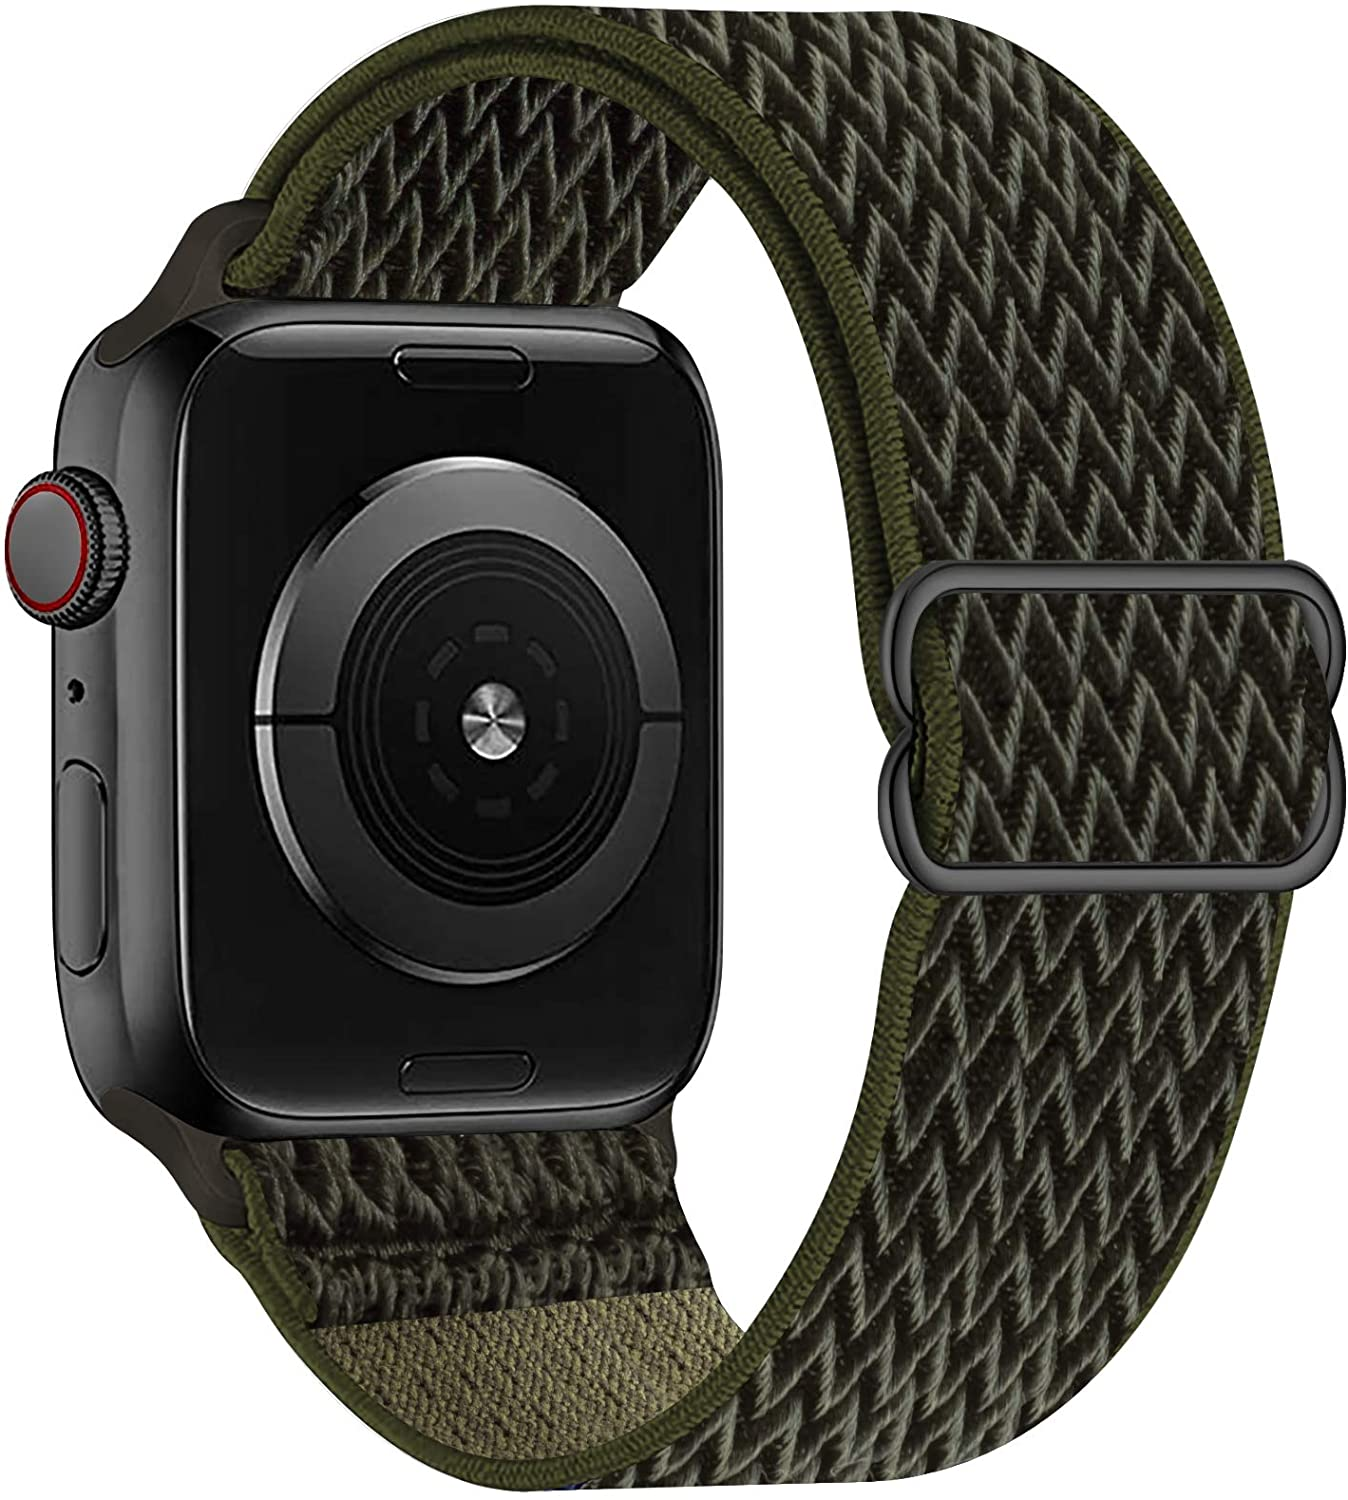 OHCBOOGIE Stretchy Solo Loop Strap Compatible with Apple Watch Bands 42mm 44mm ,Adjustable Stretch Braided Elastics Weave Nylon Women Men Wristband Compatible with iWatch Series 6/5/4/3/2/1 SE